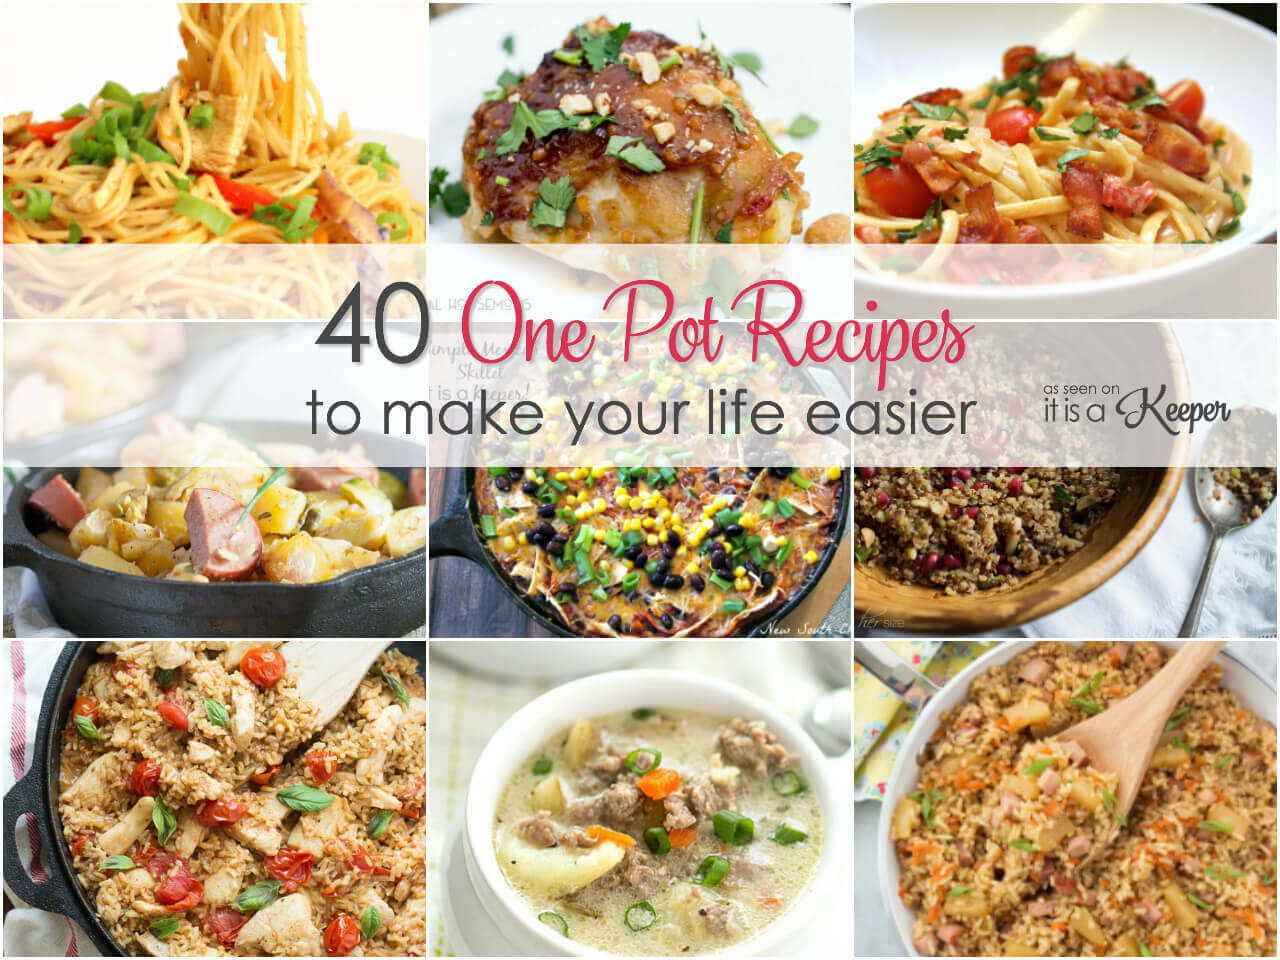 40 One pot recipes to make your life easier on busy nights